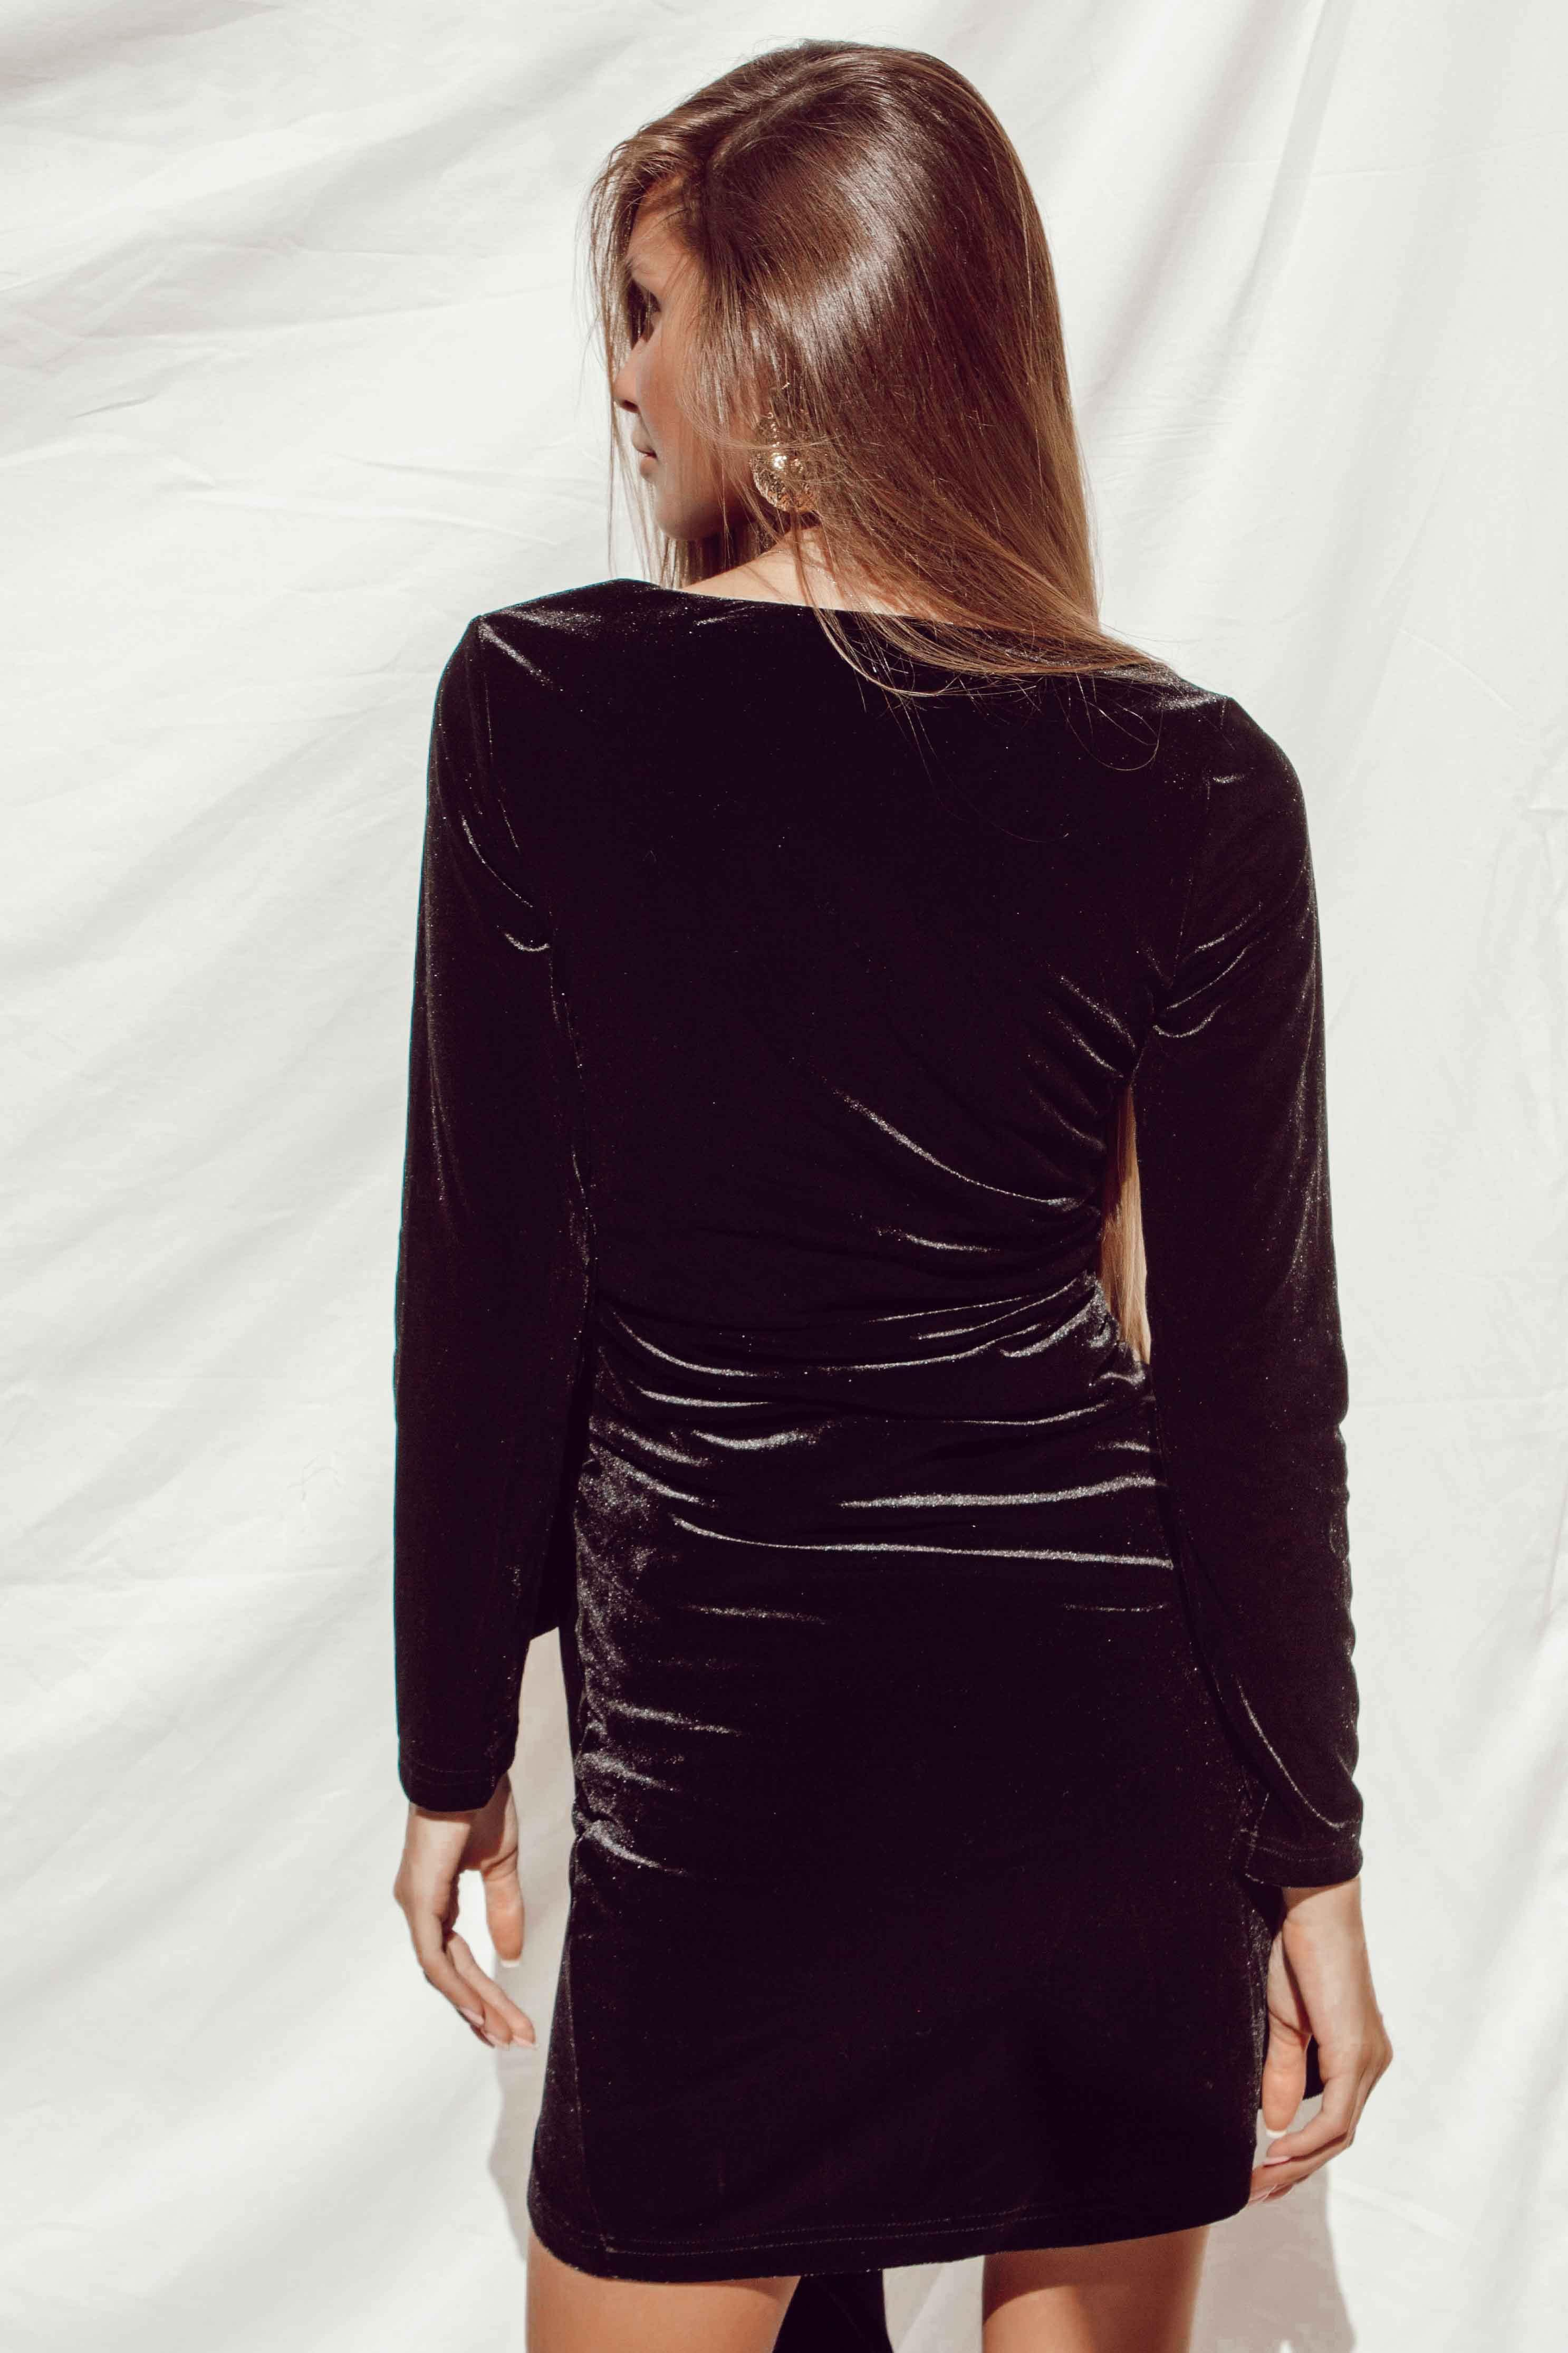 VERENA DRESS | Women's Online Shopping | CHICLEFRIQUE